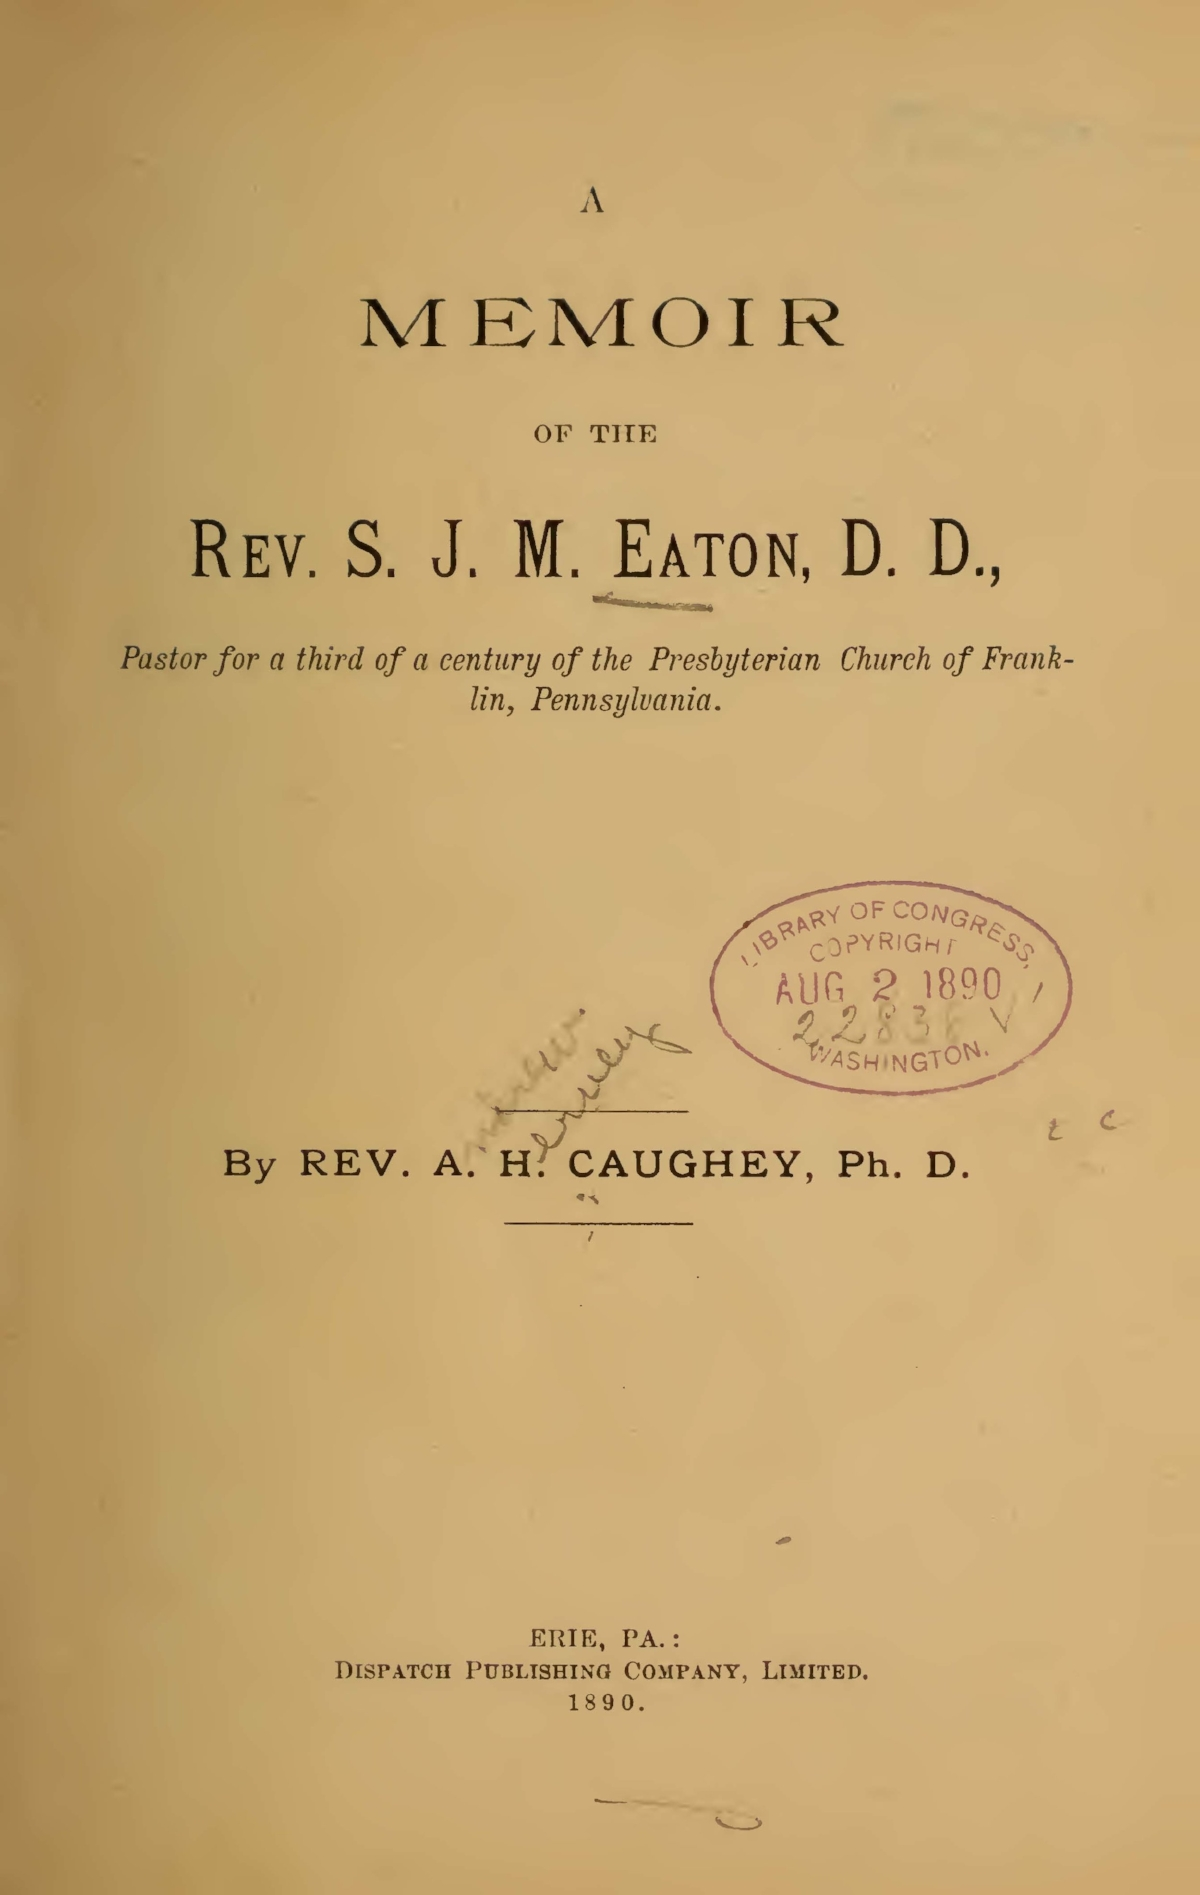 Caughey, Andrew Hervey, A Memoir of the Rev. S.J.M. Eaton, D.D. Title Page.jpg